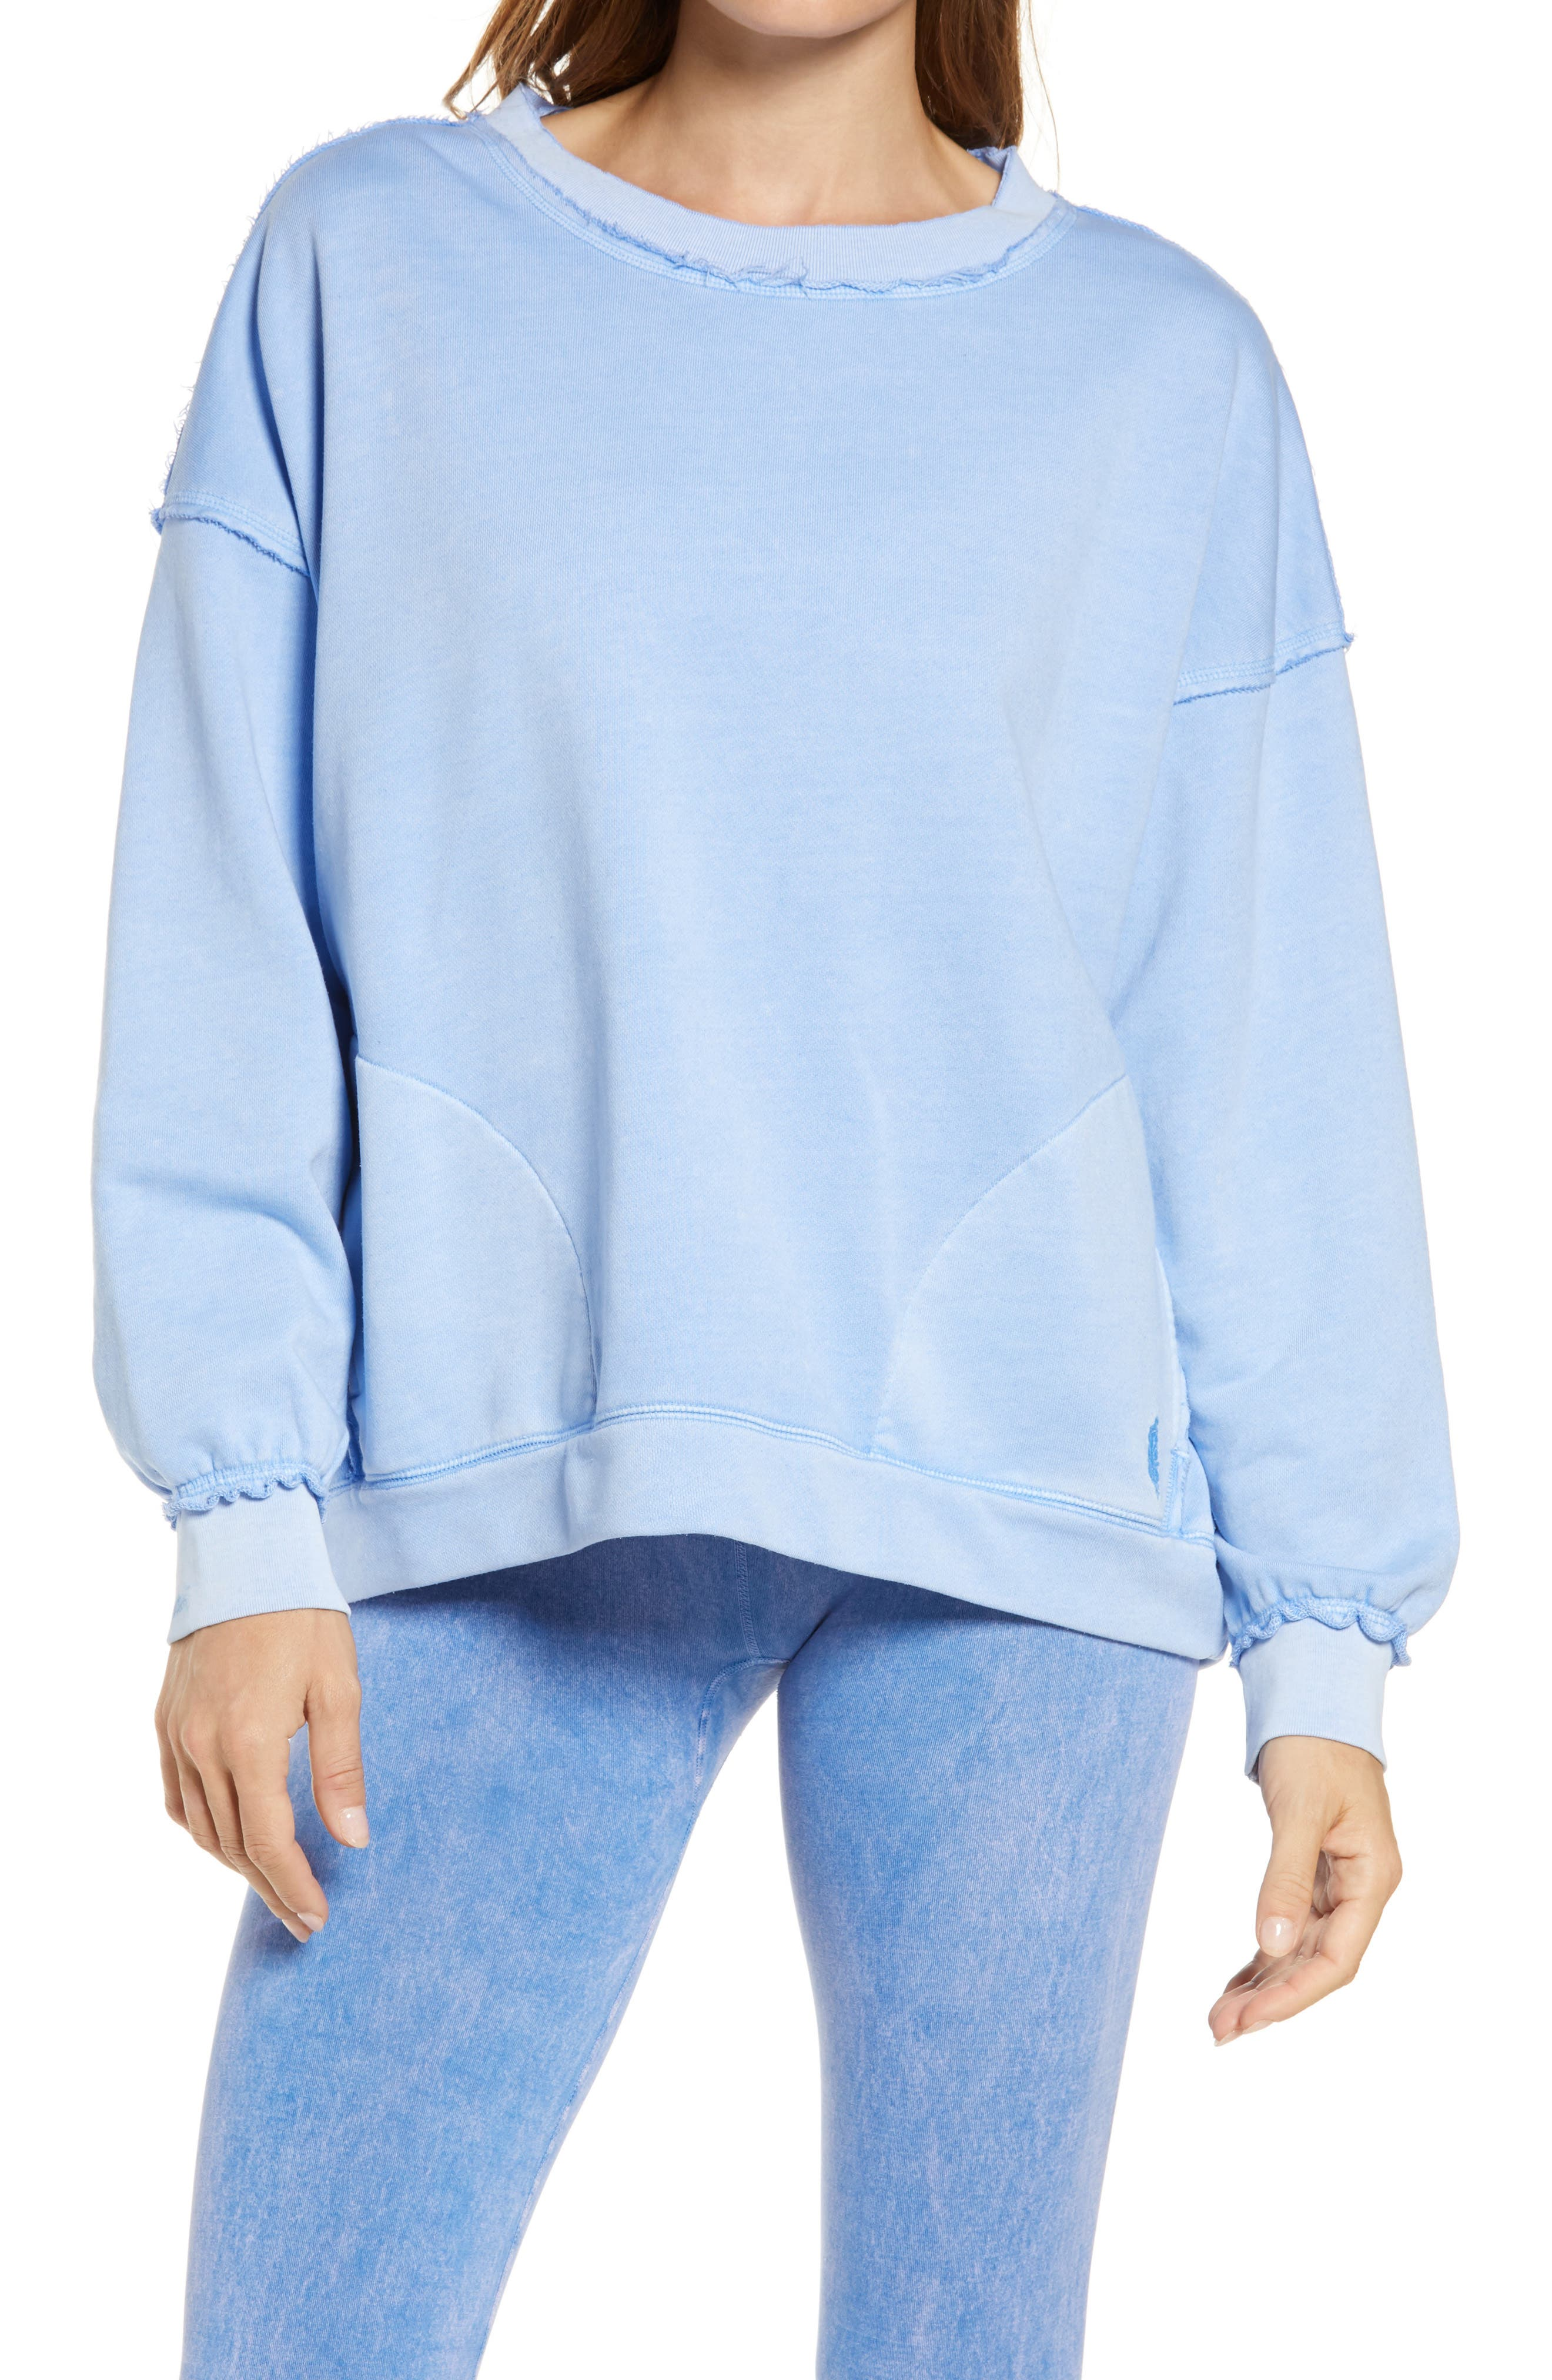 Image of Free People FP Movement Solid Metti Crew Neck Sweatshirt